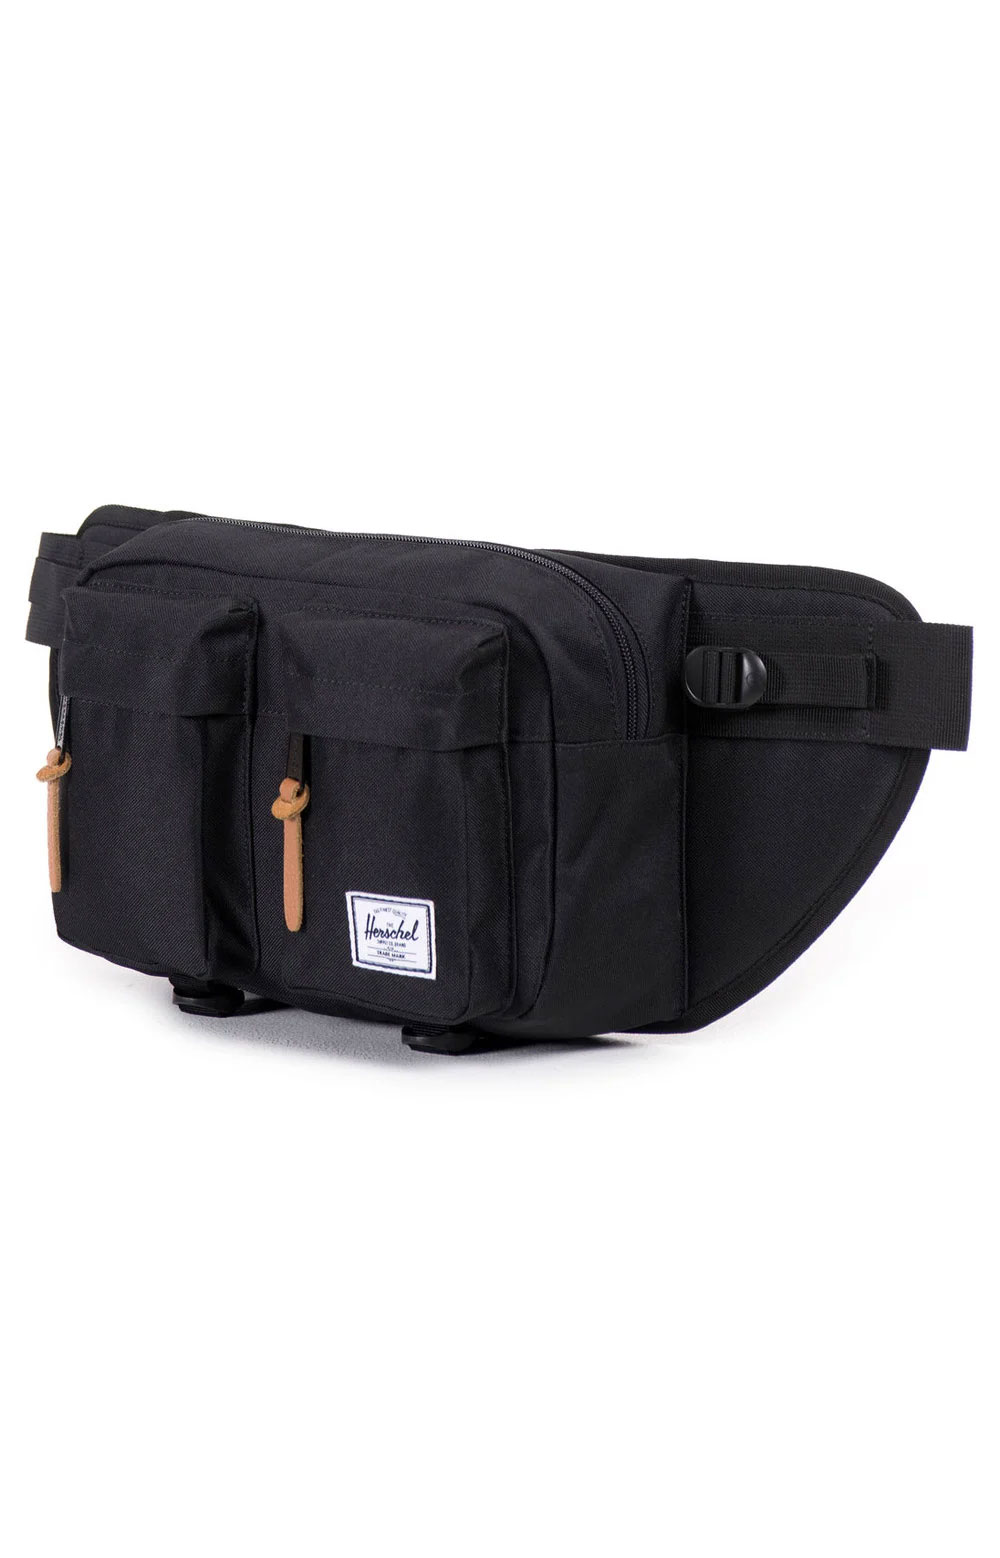 Eighteen Hip Pack - Black 3